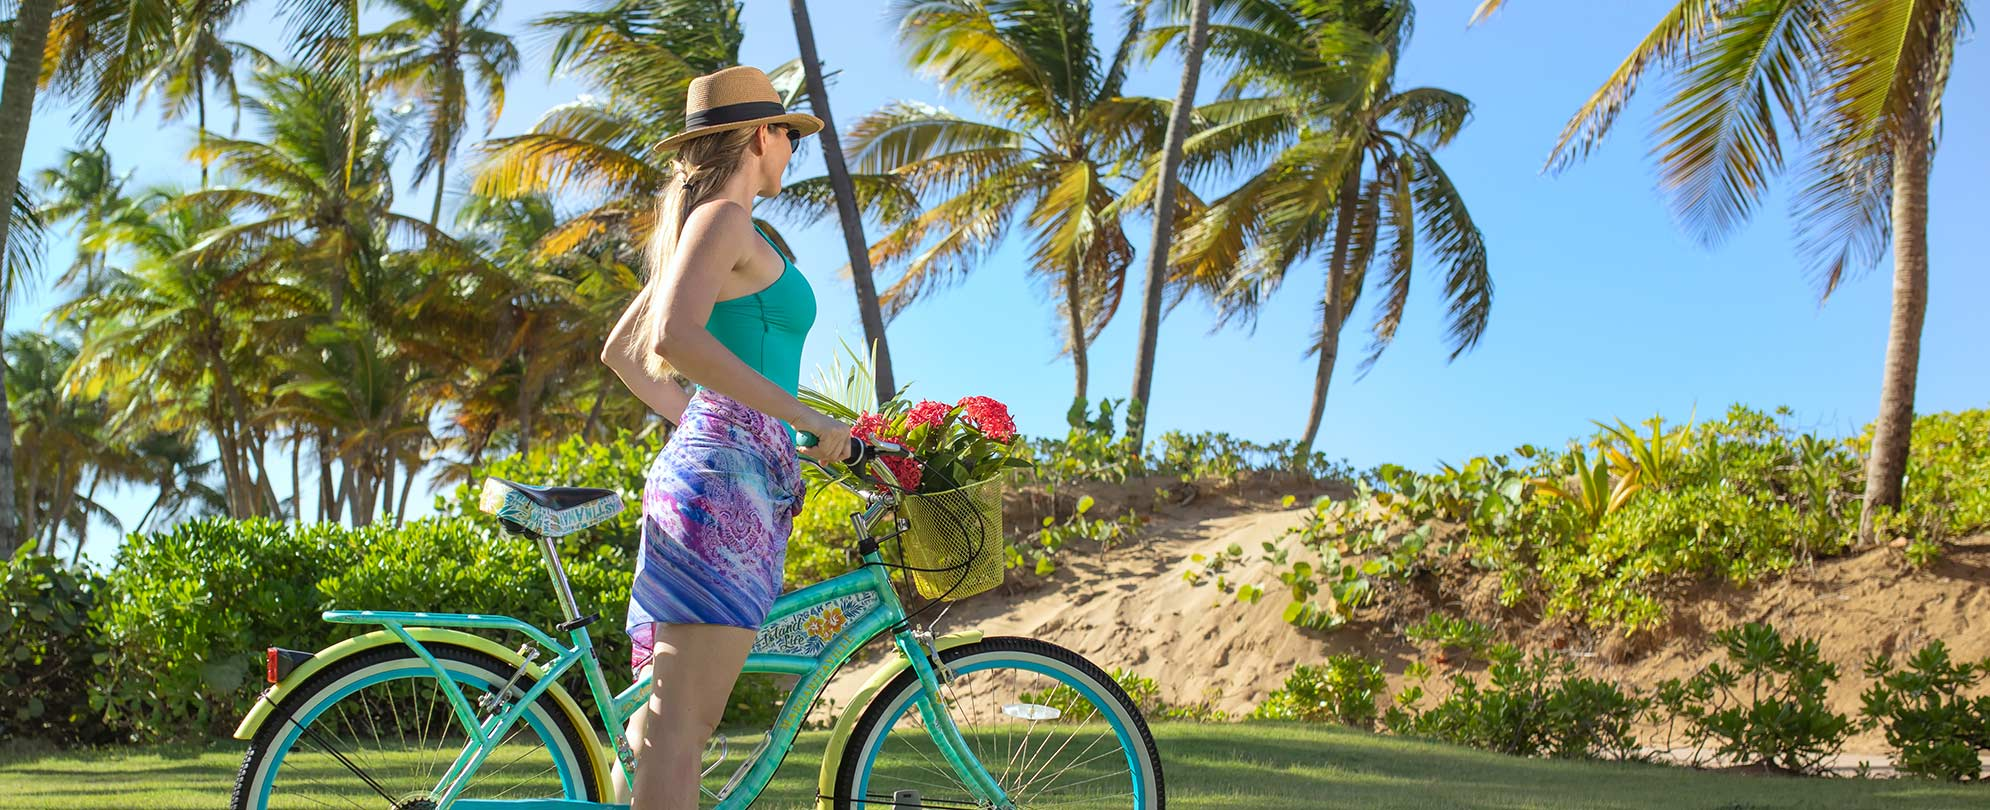 Woman standing holding a teal bike, looks out at the palm trees while vacationing at a Margaritaville Vacation Club resort.